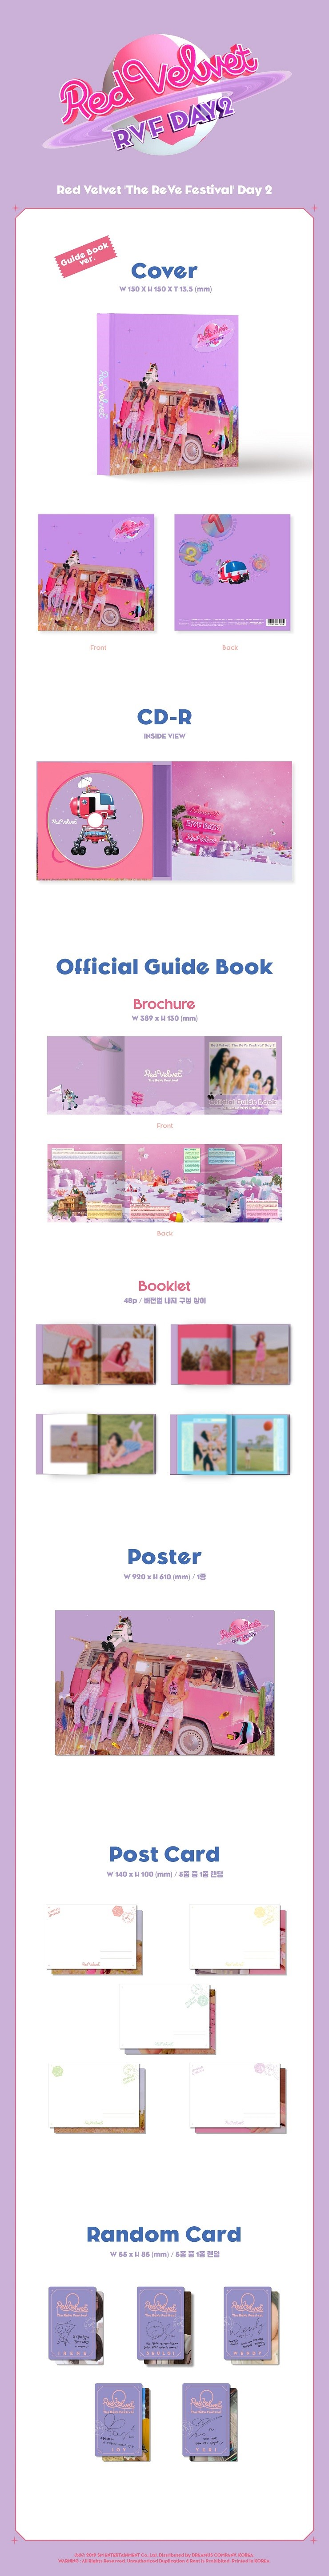 RED VELVET(레드벨벳) - THE REVE FESTIVAL DAY 2 [Guide Book Ver.]